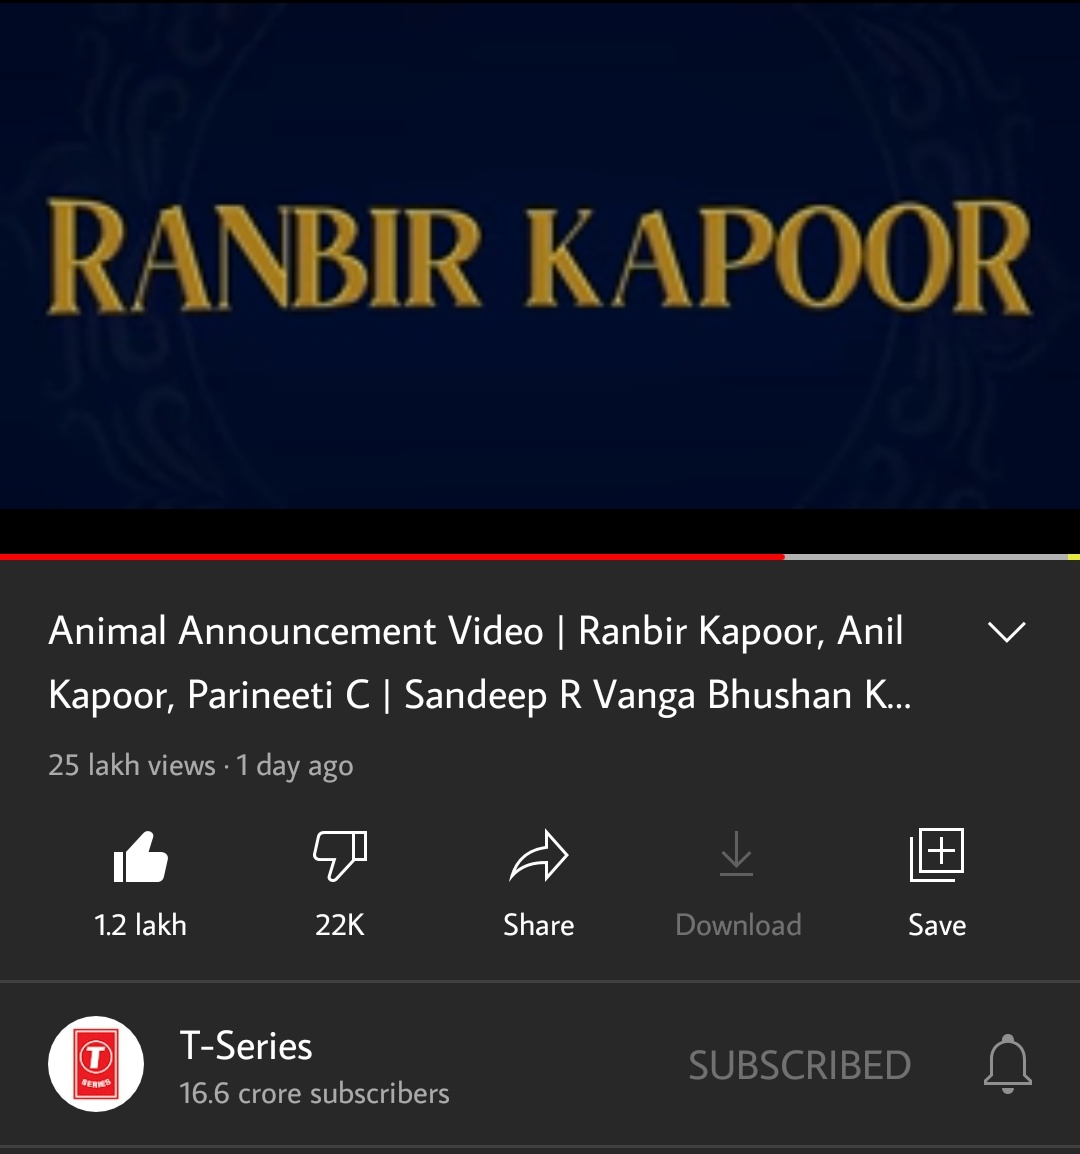 Every other production channel is hiding their likes and dislikes of any teaser/trailer of any new film! But Tseries doesn't hide Animal's likes and dislikes! They trust on fandom of RK! #RanbirKapoor #TSeriesFilms #Animal